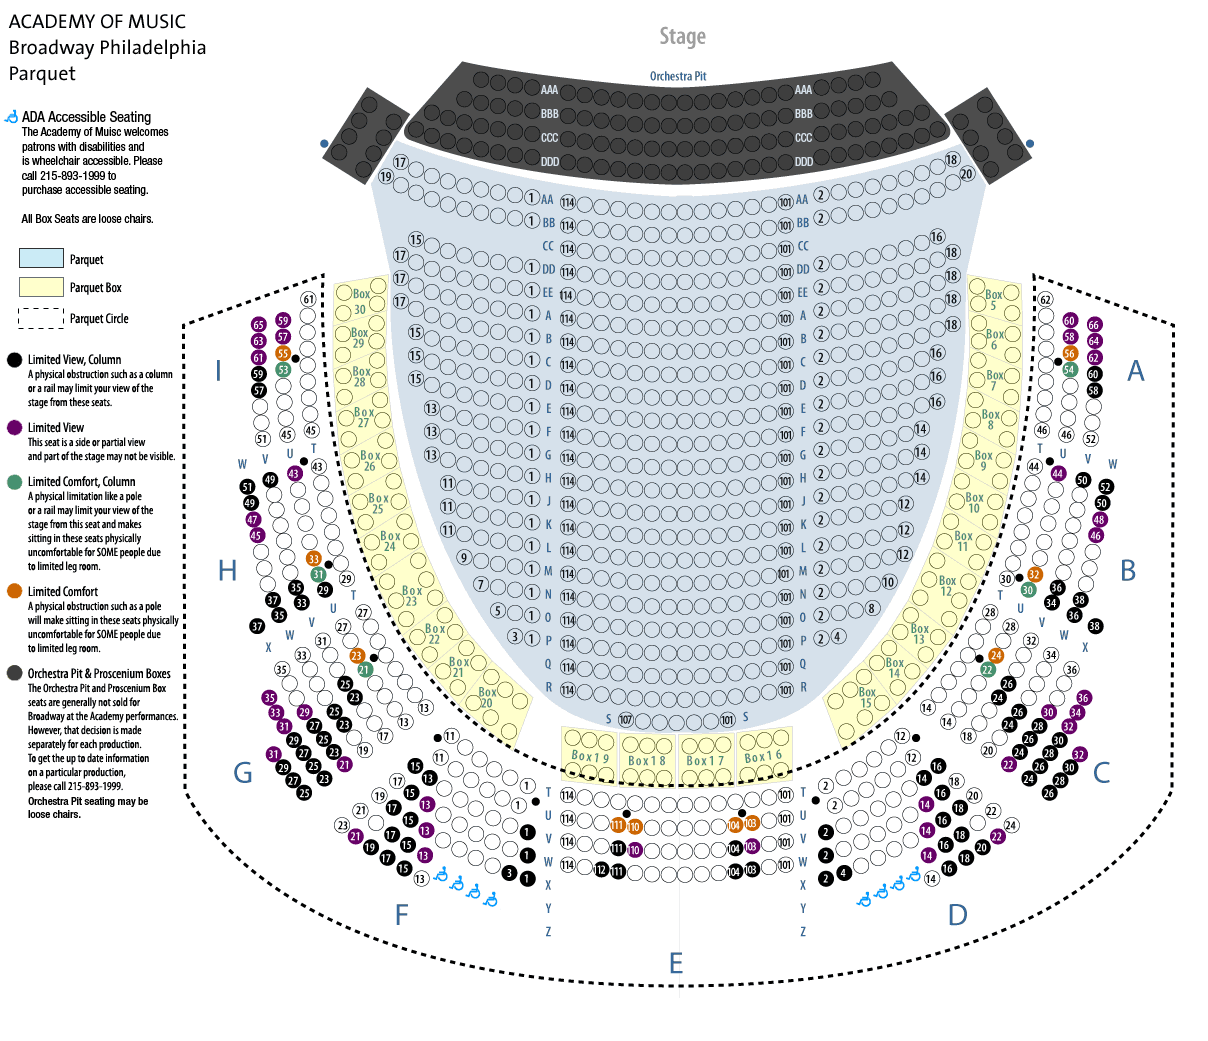 AOM Broadway Parquet | Academy of music, Seating charts, Seating